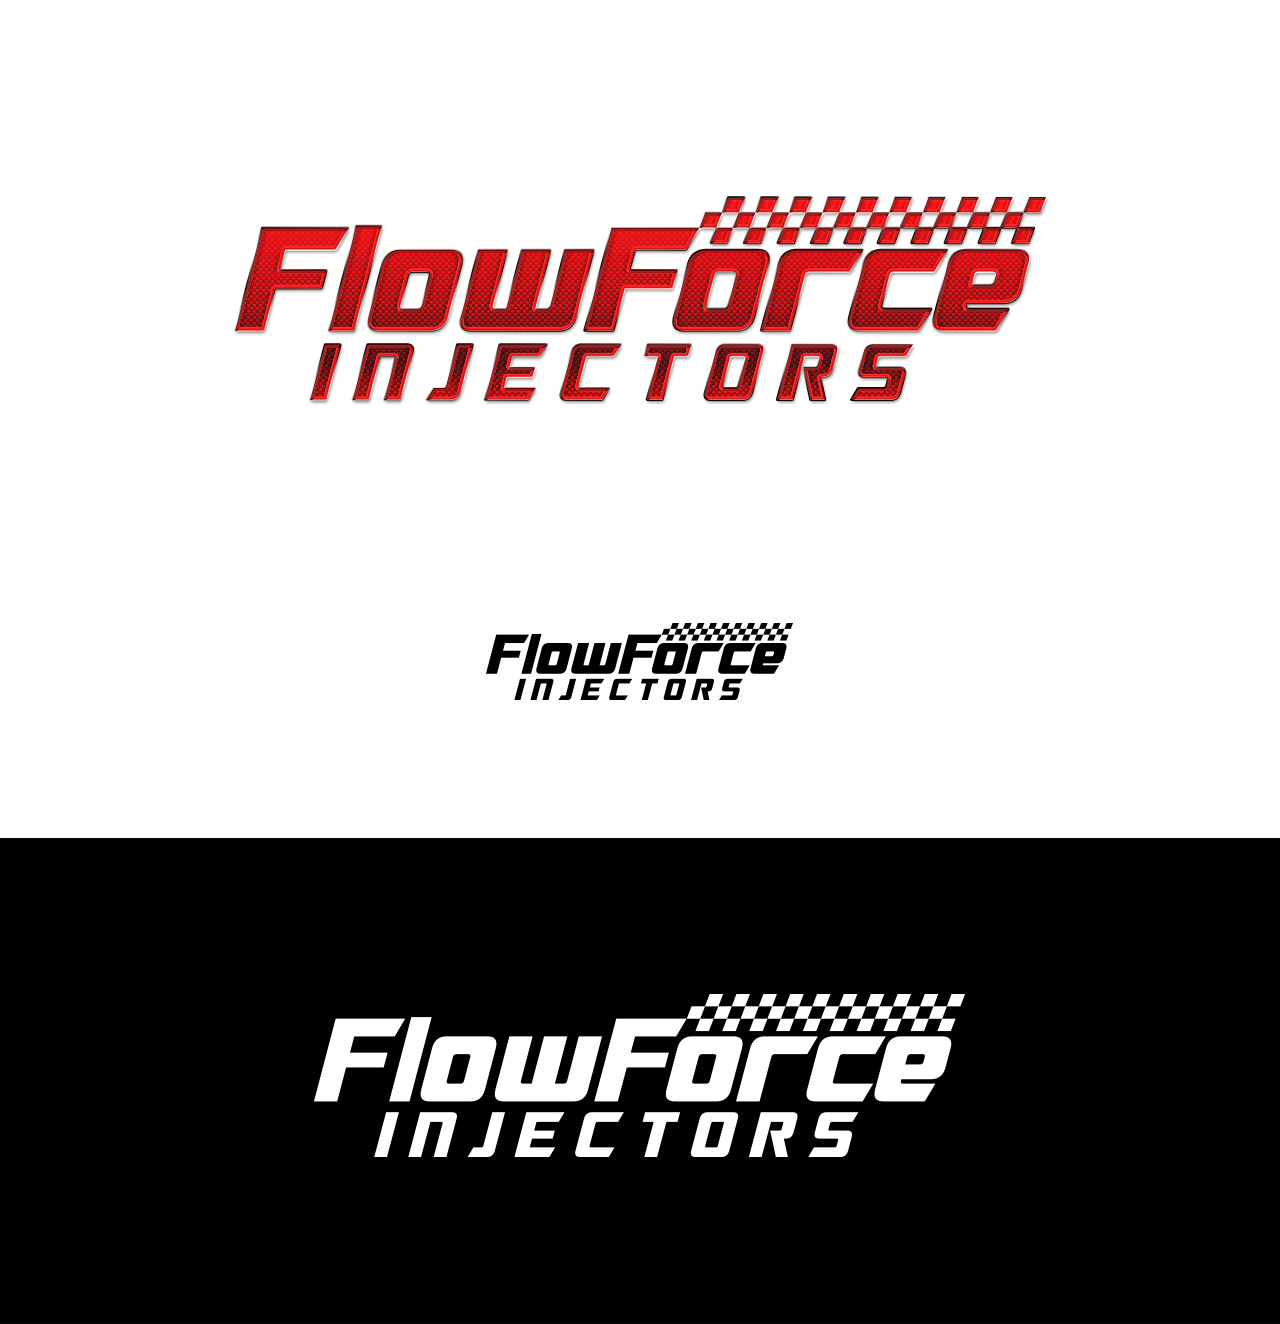 Logo Design by Tauhid Shaikh - Entry No. 104 in the Logo Design Contest Fun Logo Design for Flow Force Injectors.